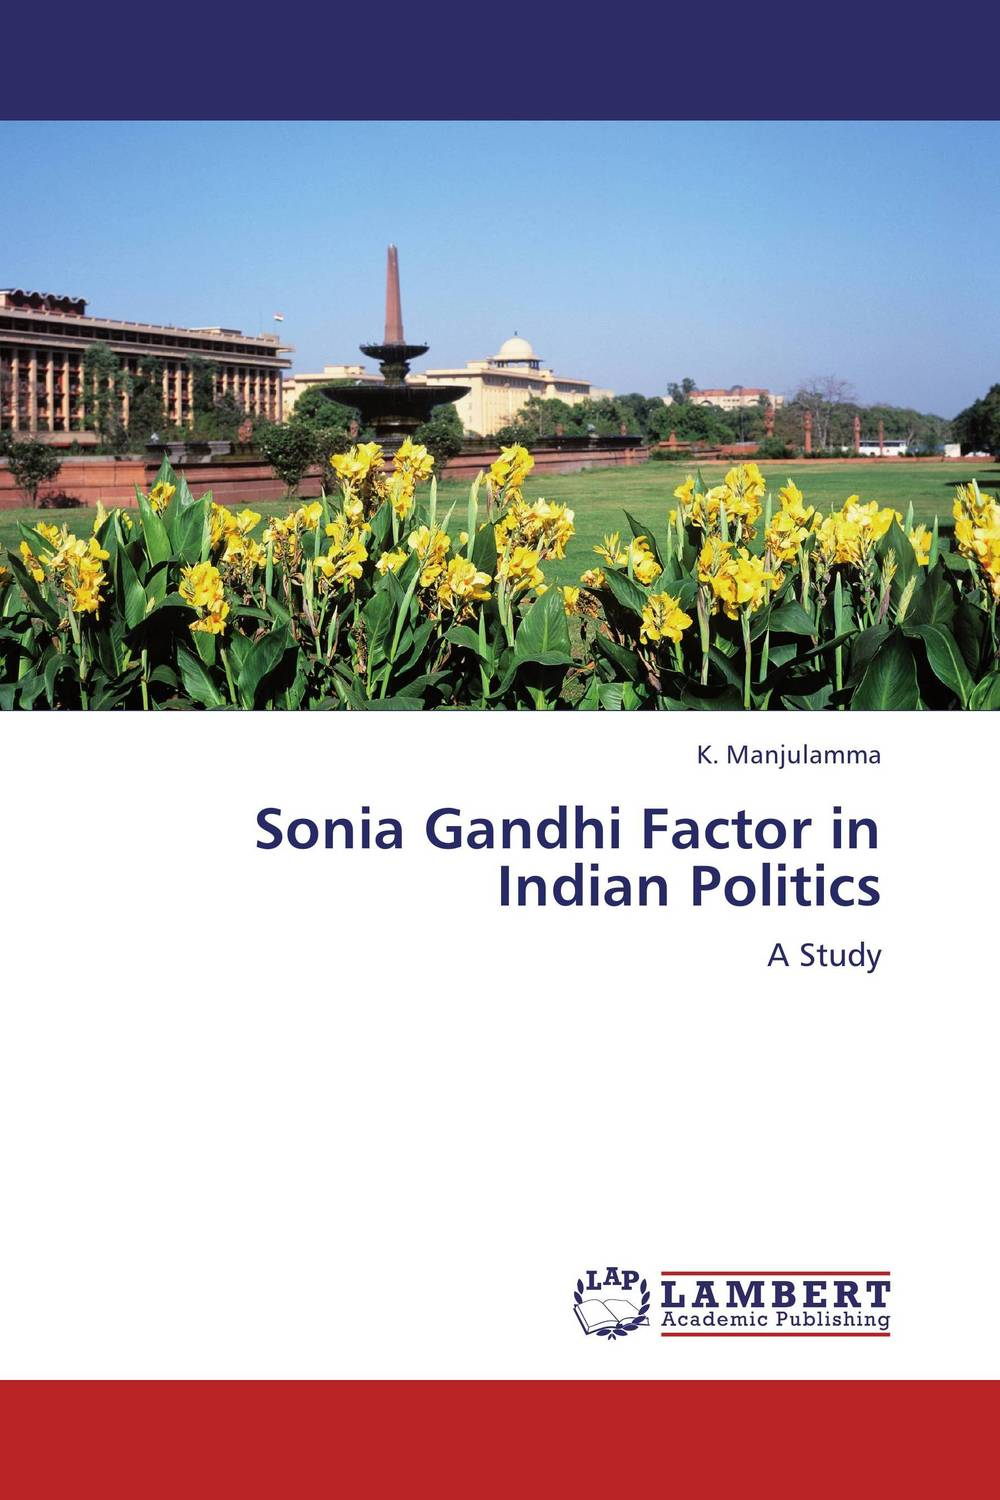 Sonia Gandhi Factor in Indian Politics